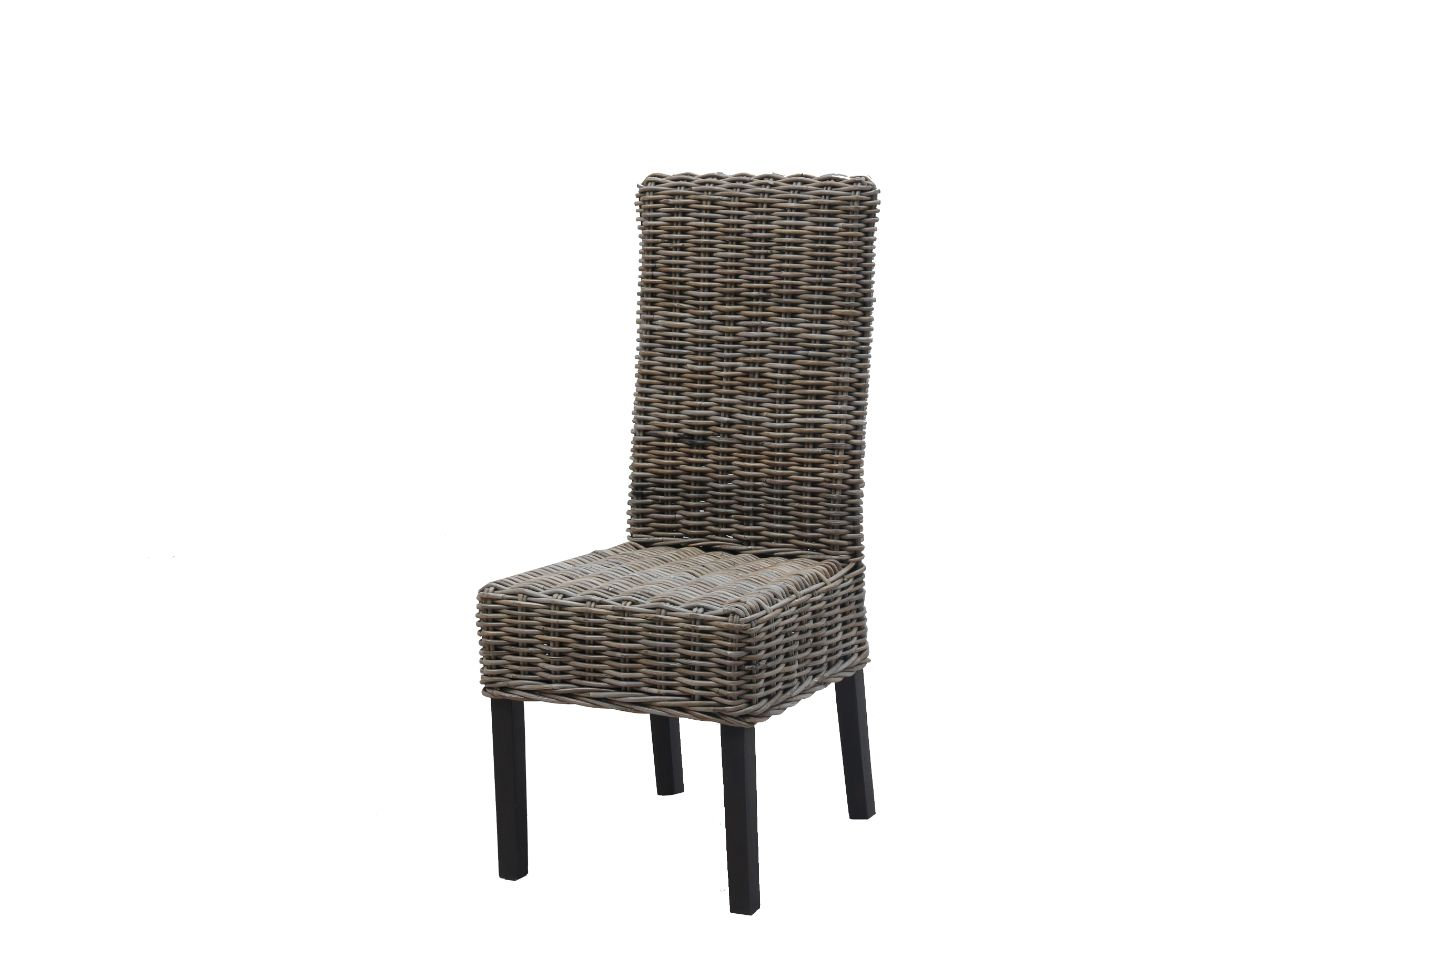 Rattan Furniture 29